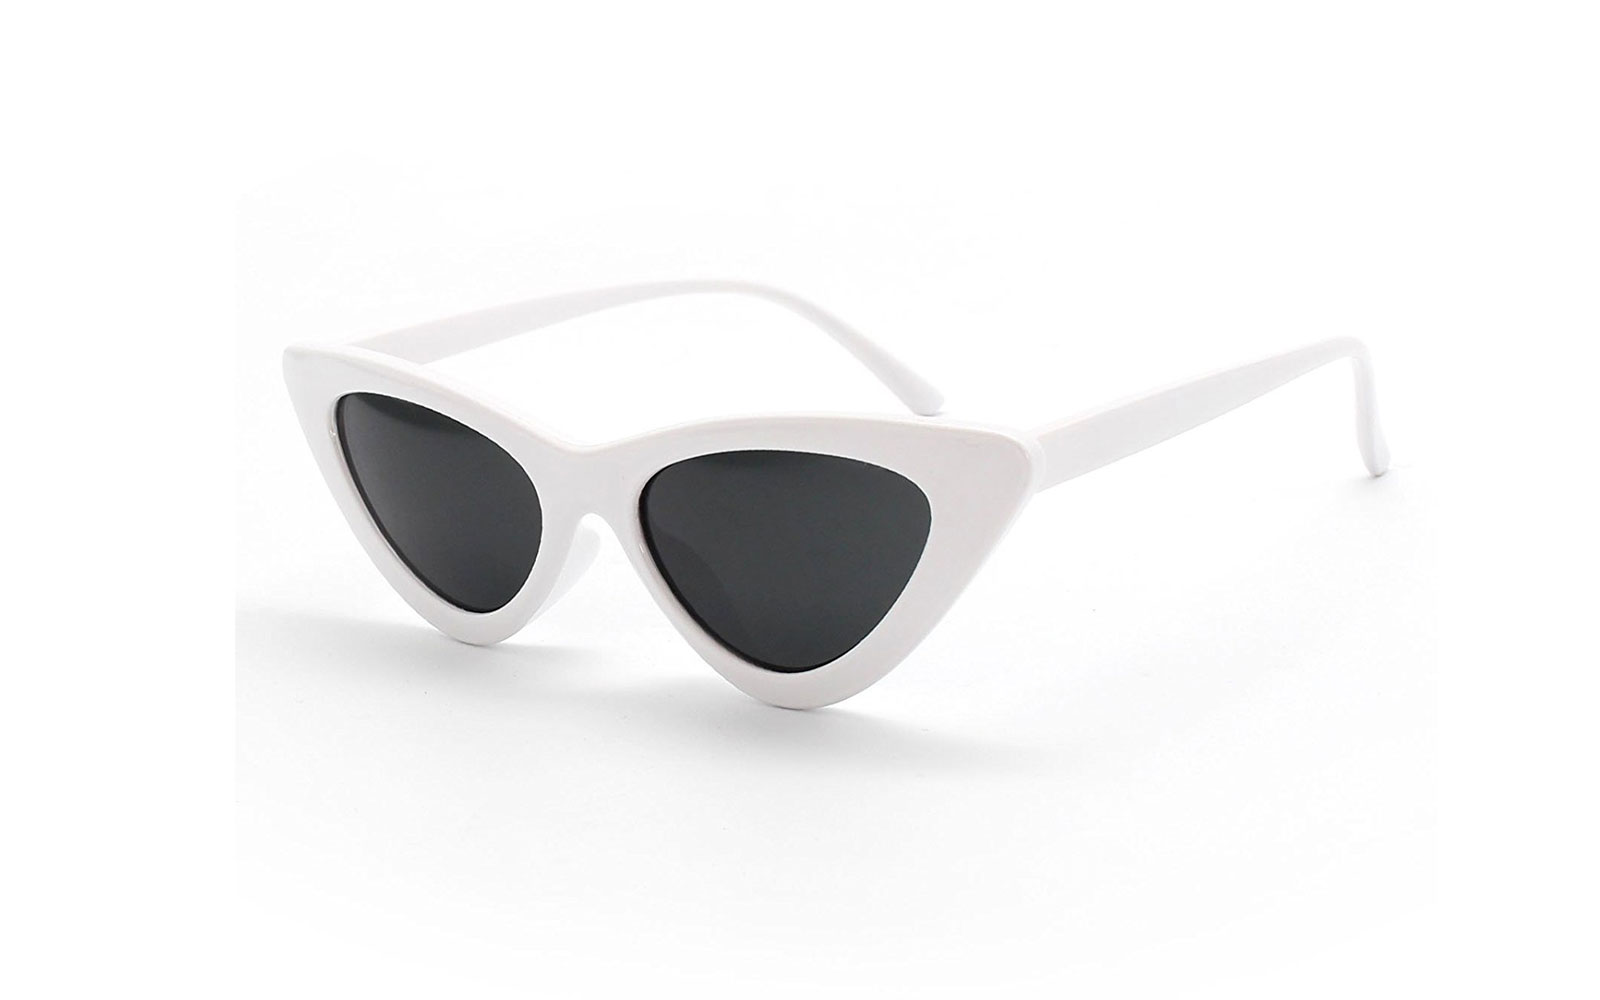 6c648cd370 13 Cute Pairs of Sunglasses You d Never Guess We Found on Amazon ...